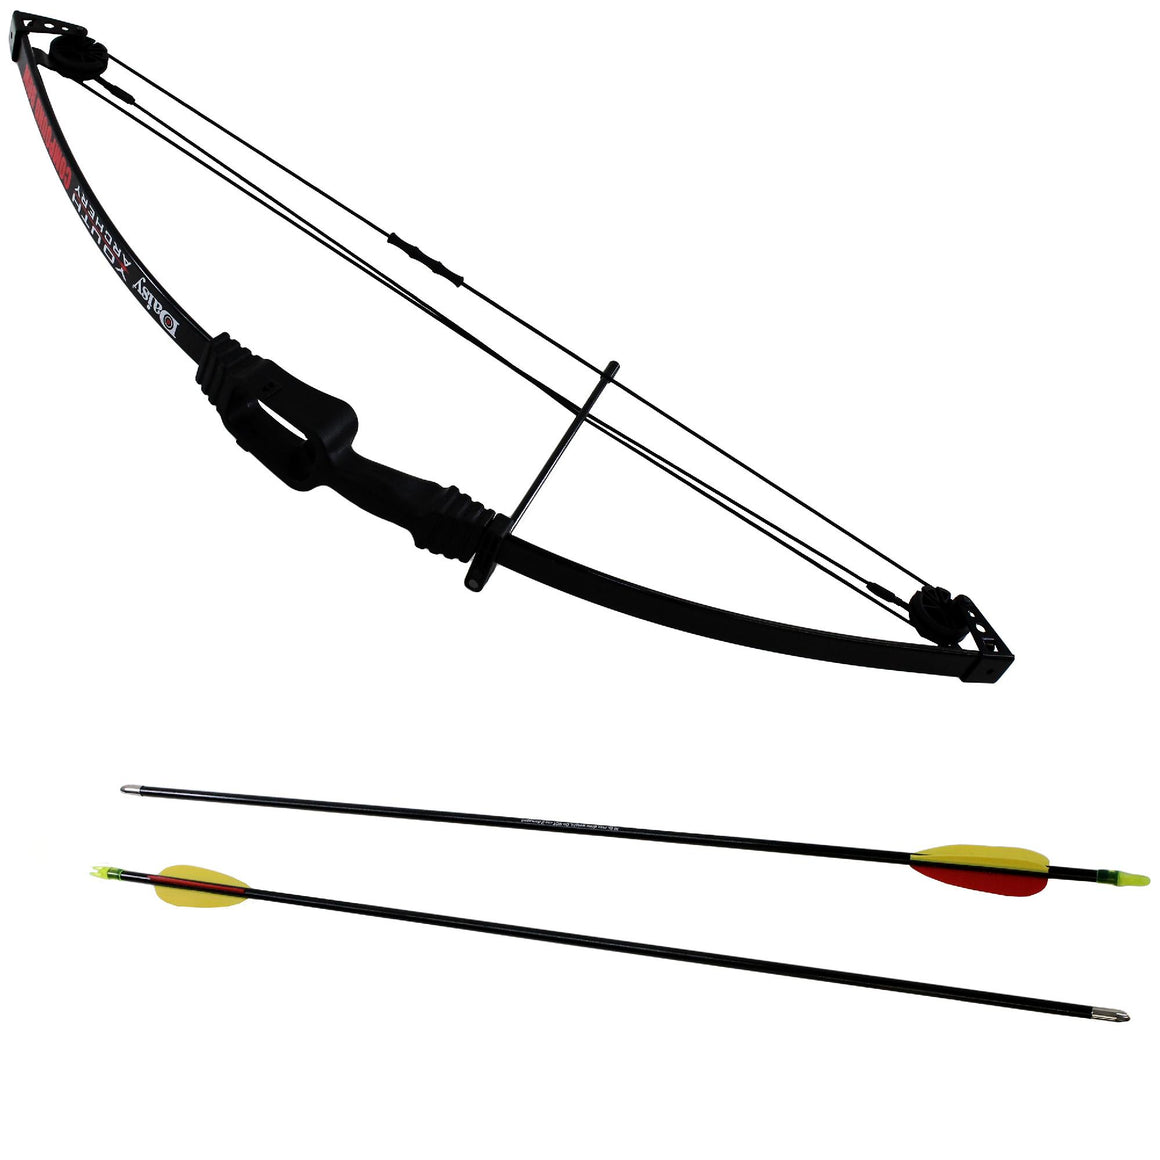 "Youth Package - Compound Bow, Ambidextrous, 13-19 lb Draw Weight, 16""-25"" Draw Length, Black"